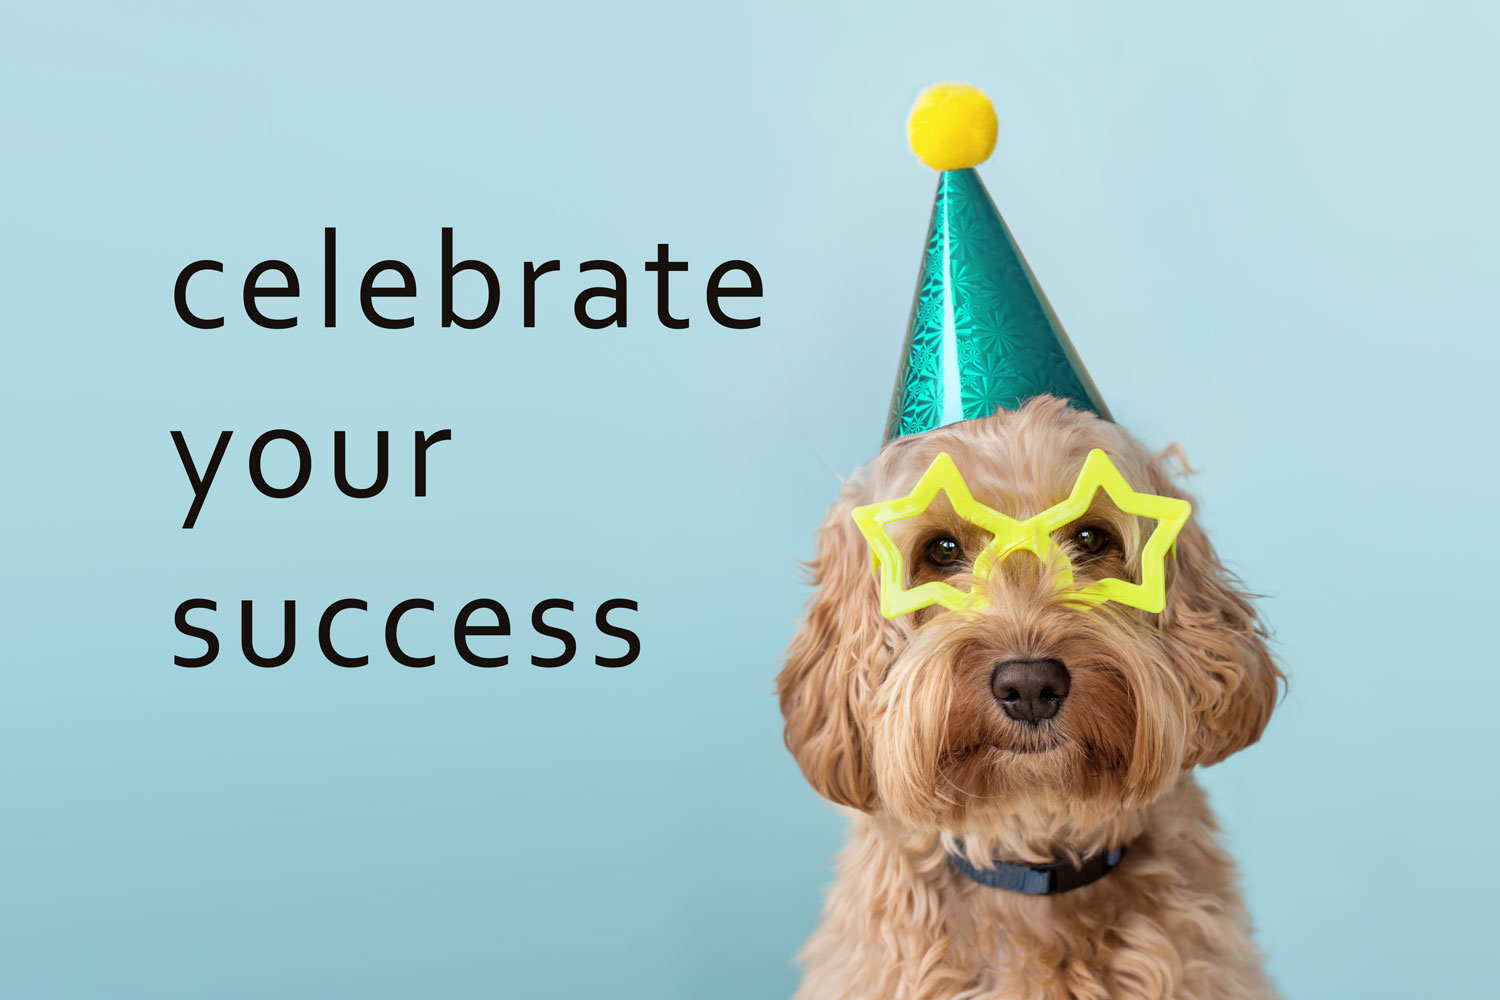 celebrate your success dog with hat